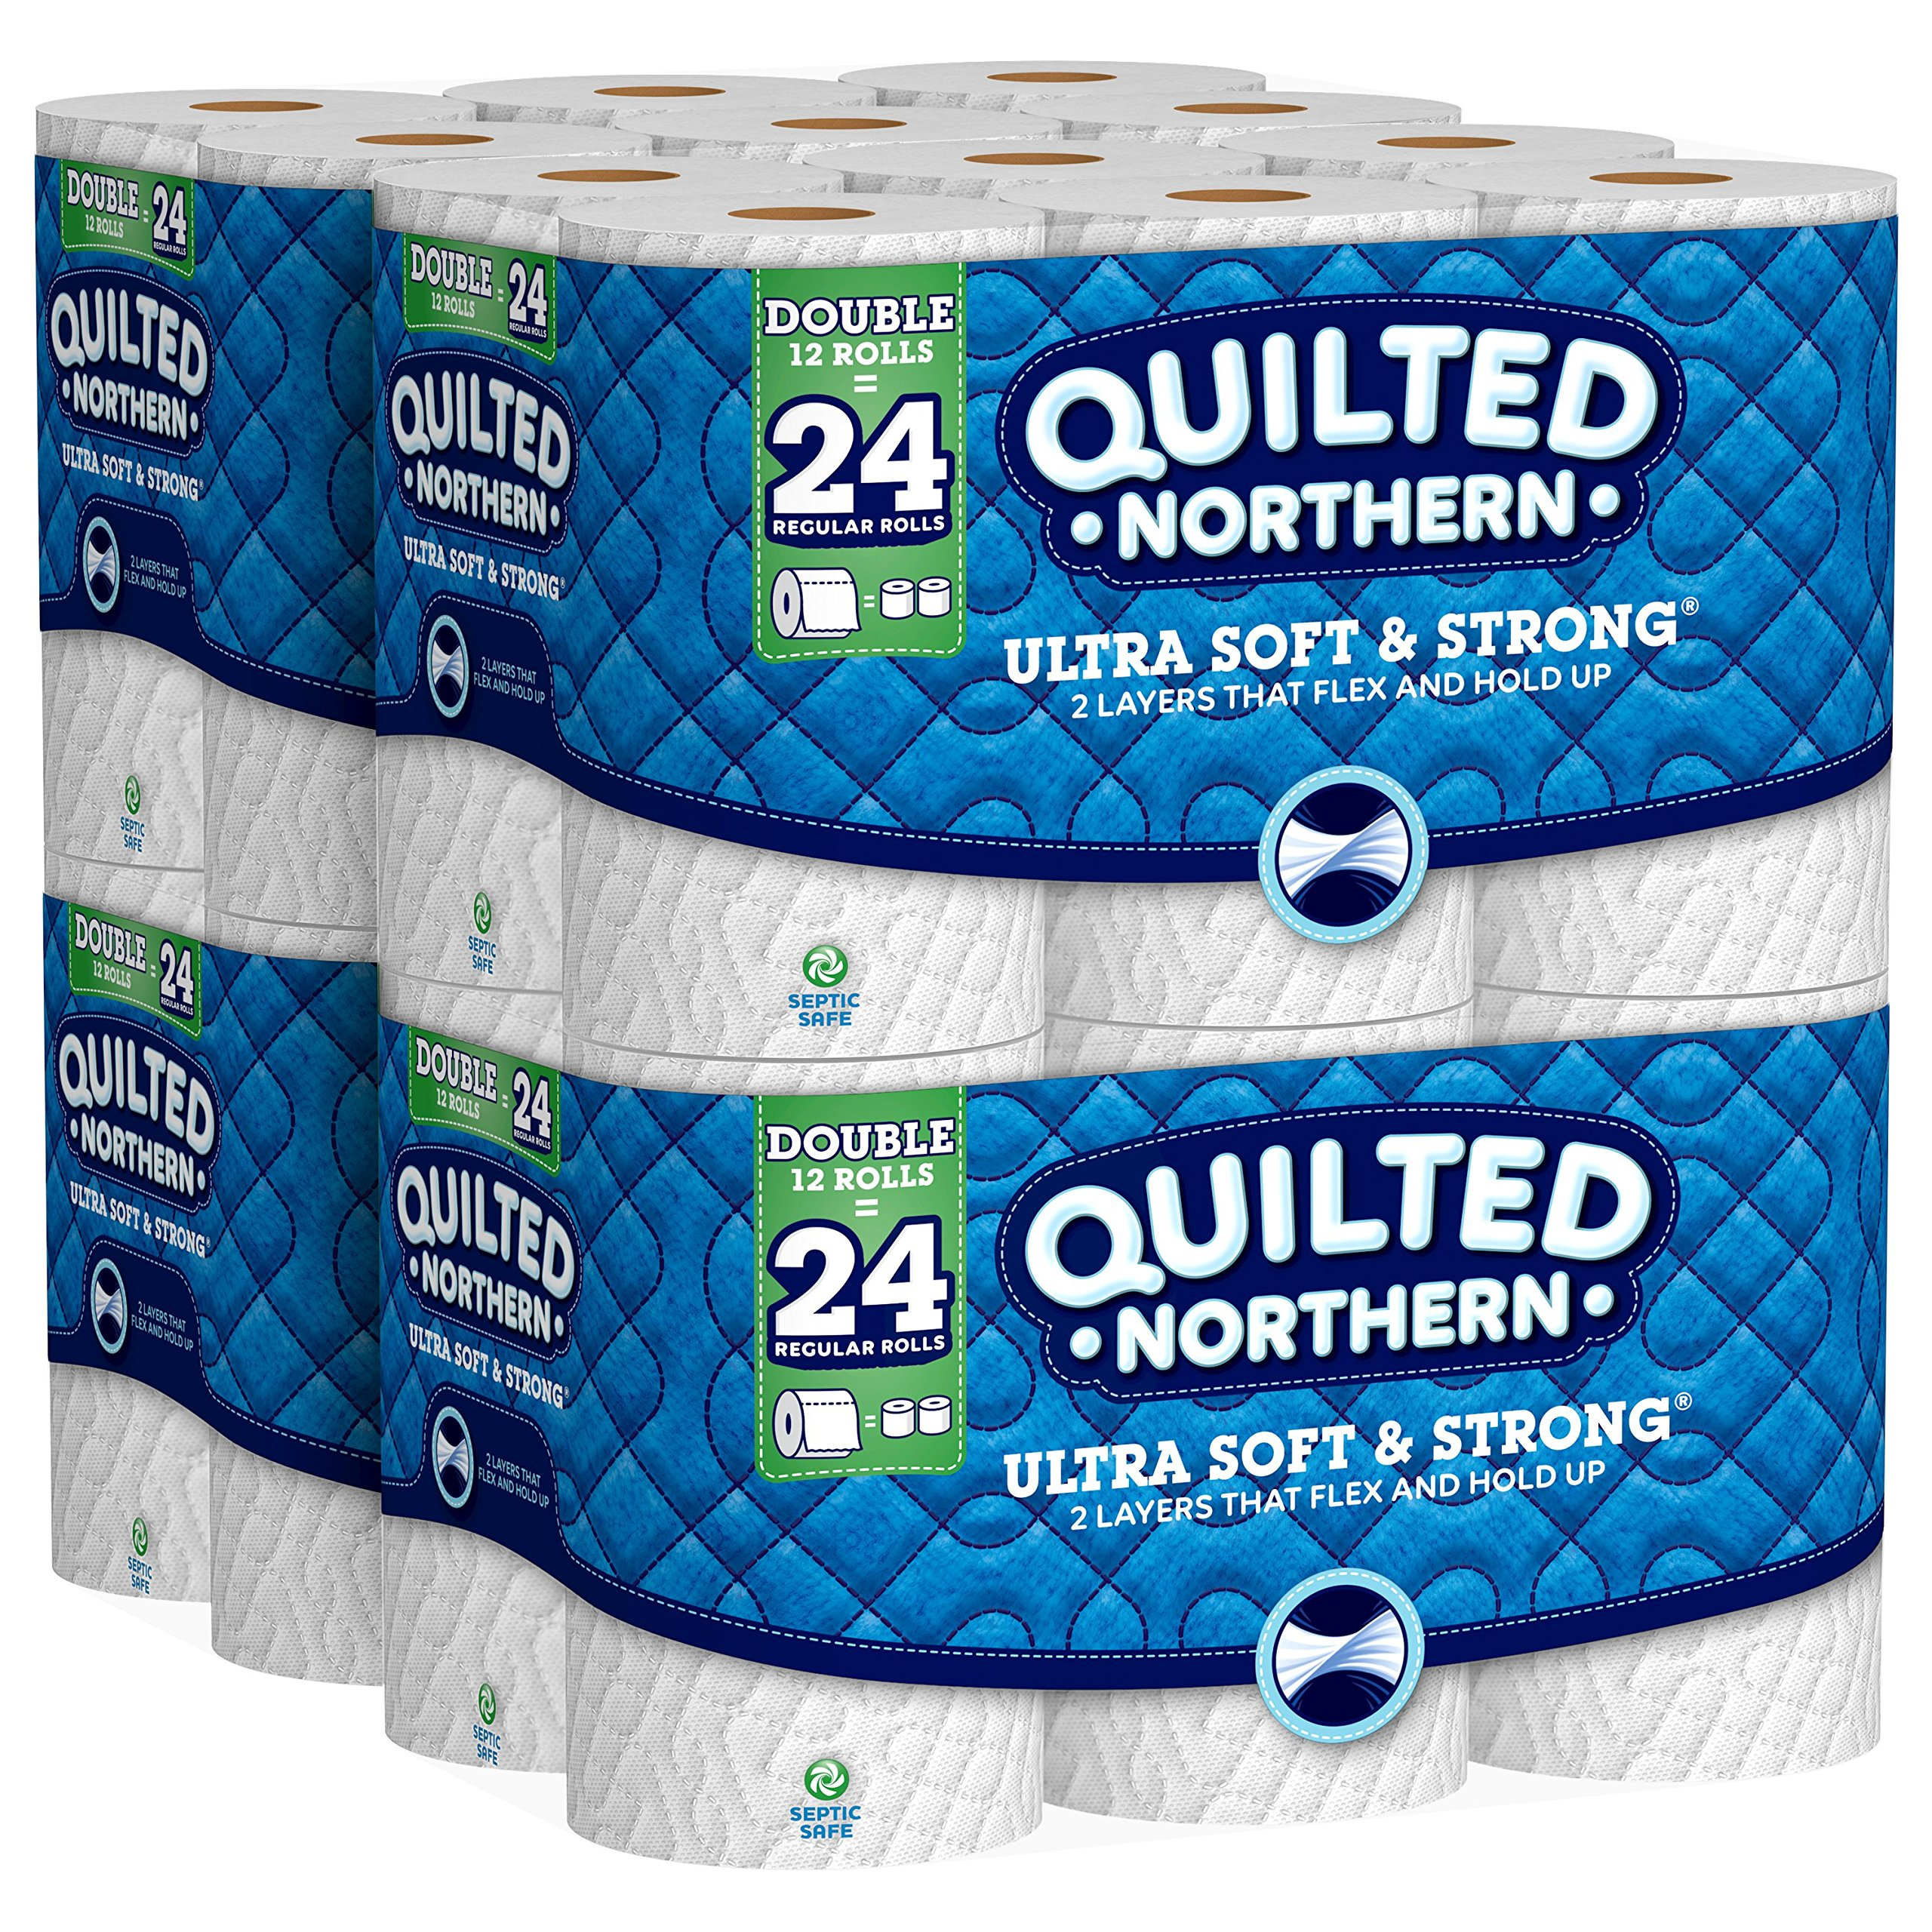 Quilted Northern Ultra Soft & Strong Toilet Paper, 48 Double Rolls, 164 2-Ply Sheets Per Roll